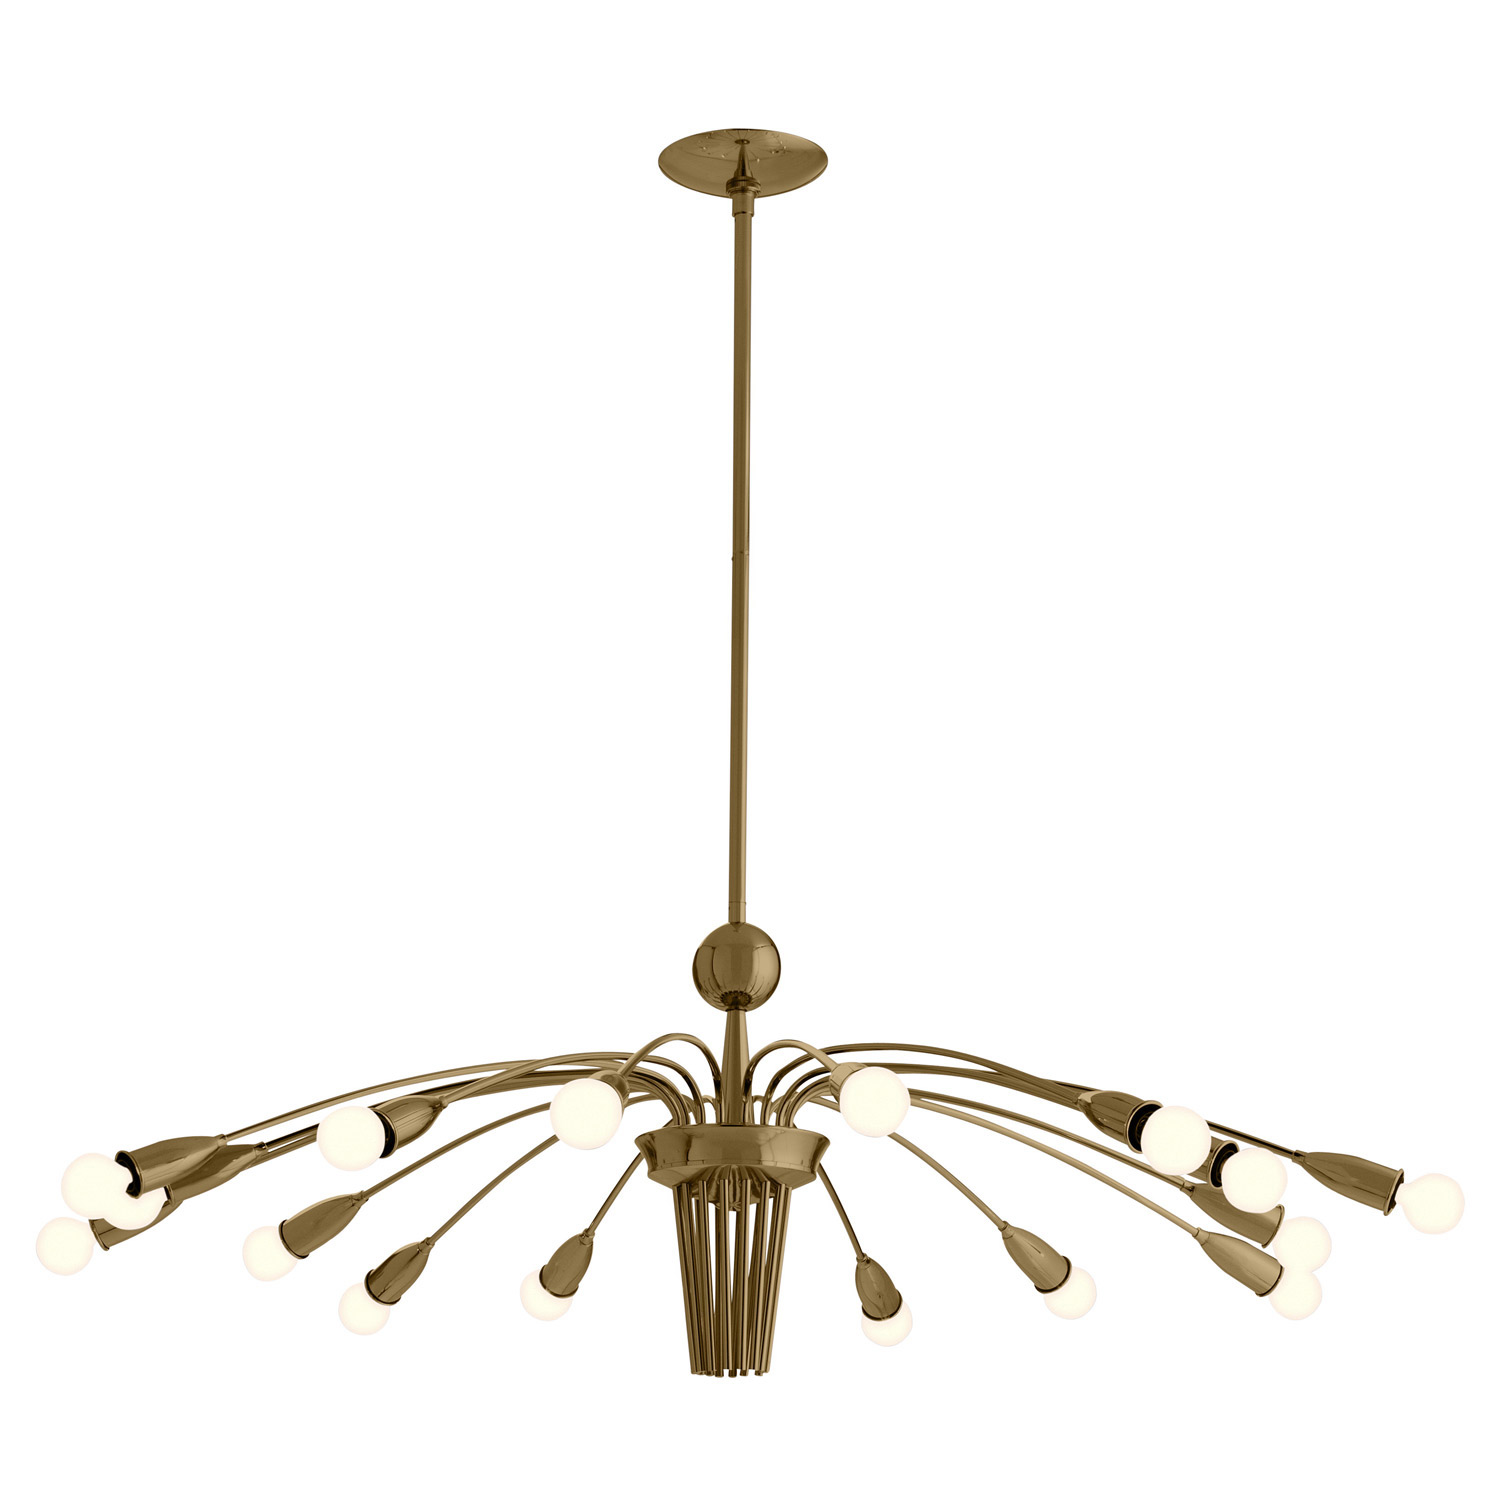 Lighting Fascinating Lights By Arteriors Lighting For Home Ideas